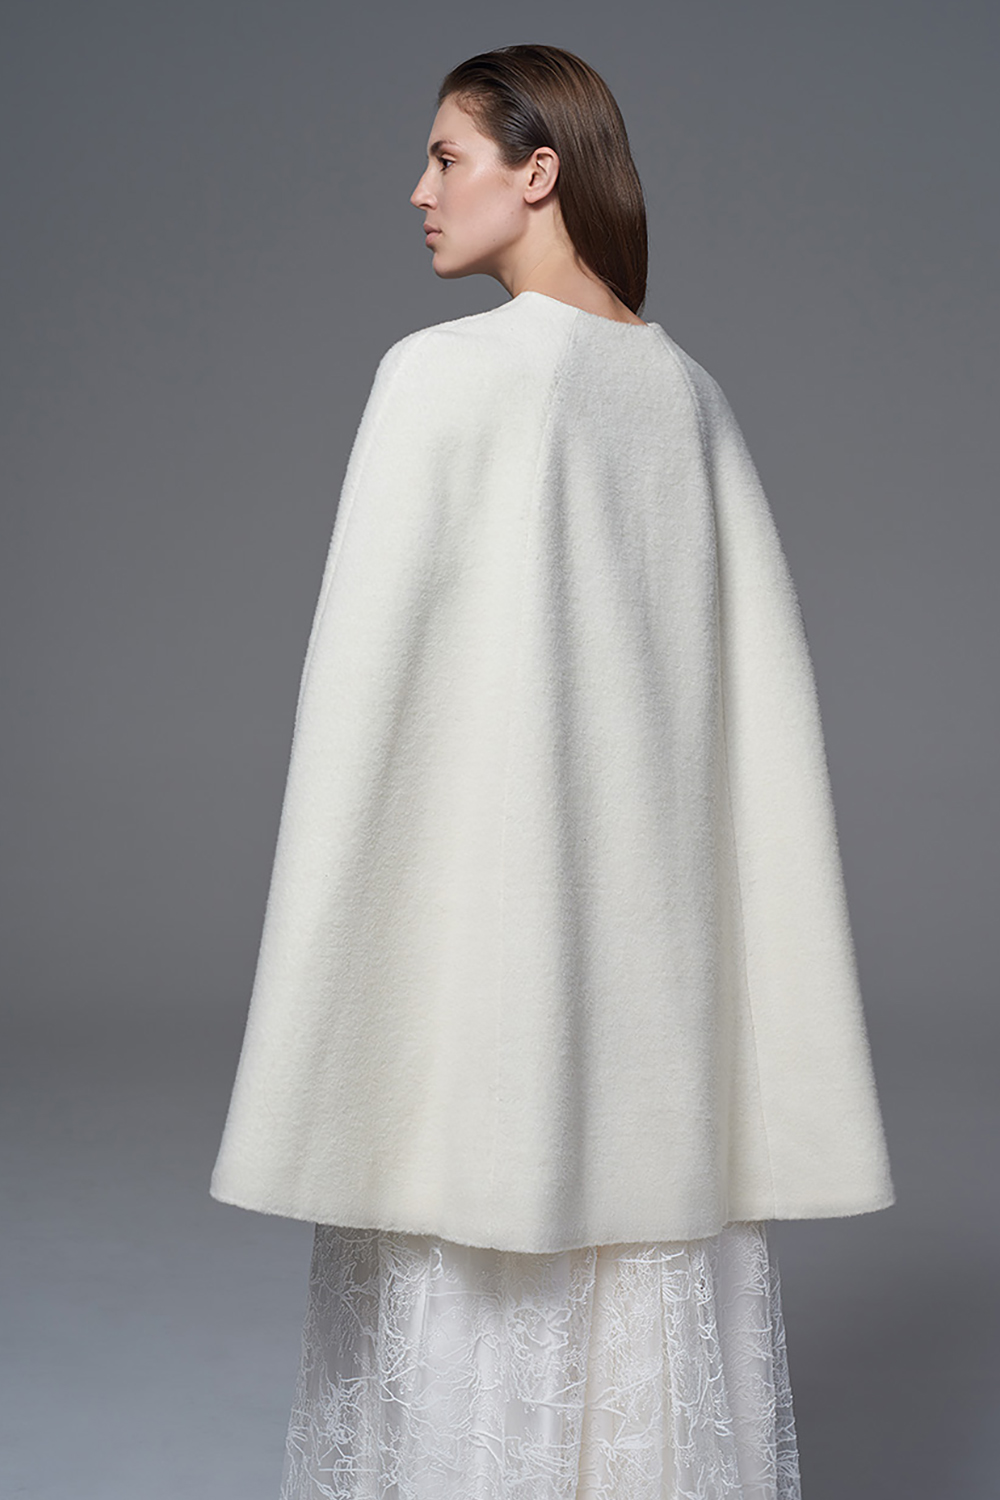 WOOL CAPE BRIDAL WEDDING DRESS BY HALFPENNY LONDON